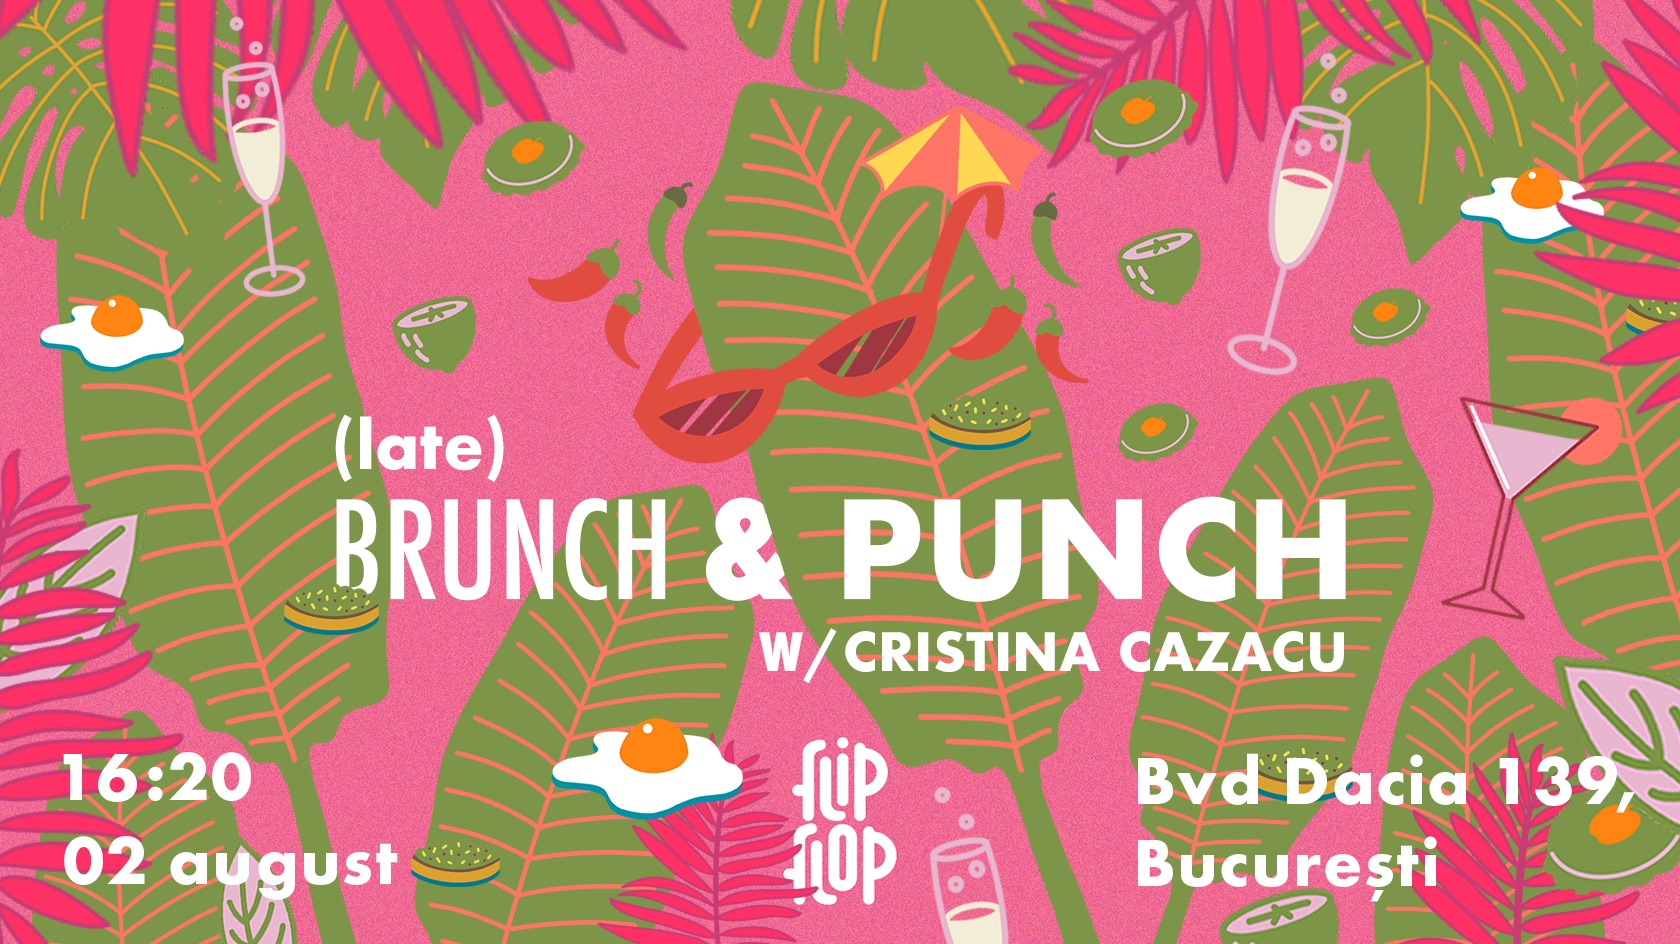 evenimente weekend 31 iulie-2 aug Brunch & punch la flipflop bistroteca